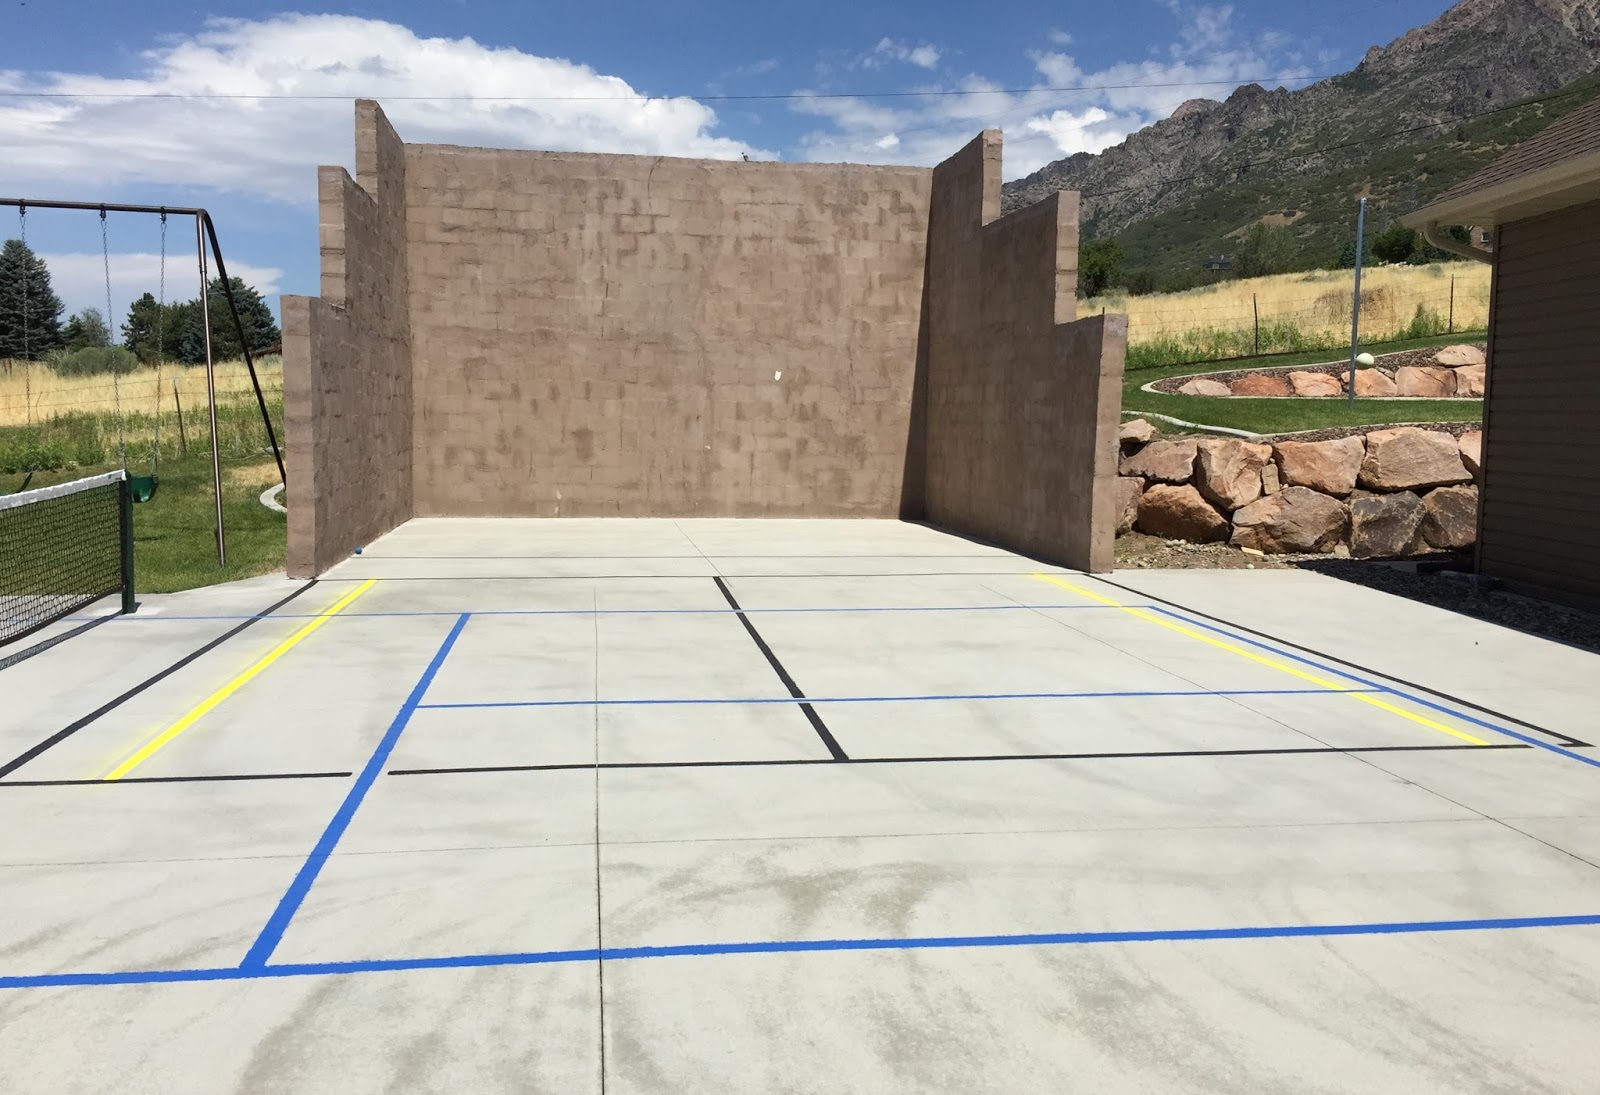 DIY Projects: Building an Outdoor Racquetball Court